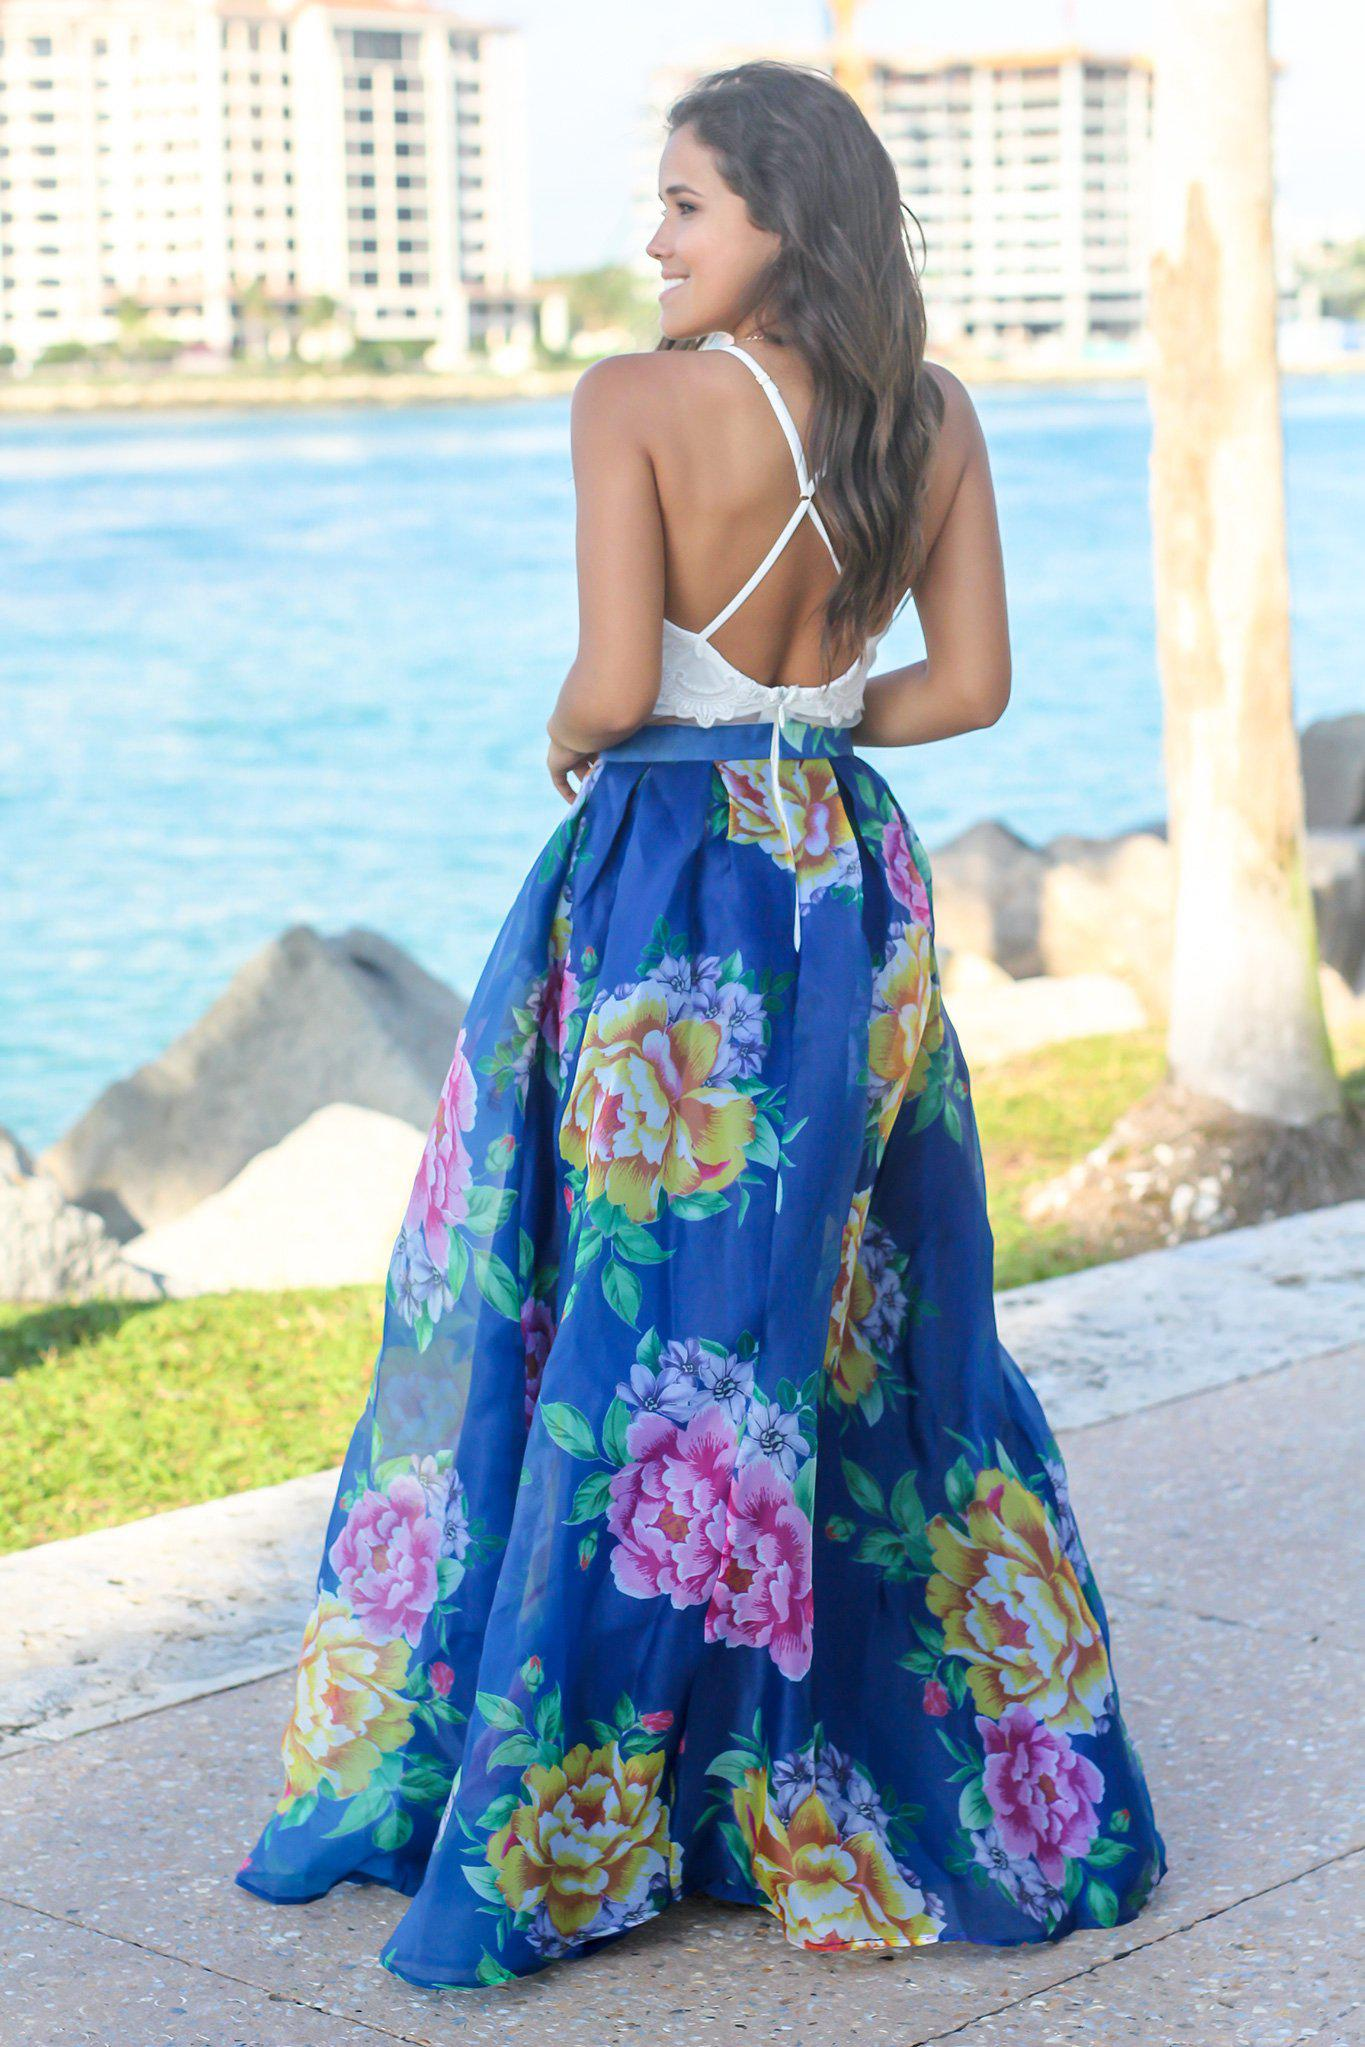 db4a164eb1 Ivory and Royal Blue Floral Maxi Dress with Criss Cross Back; Boutique  Dresses; Maxi Dresses; Floral Dresses ...